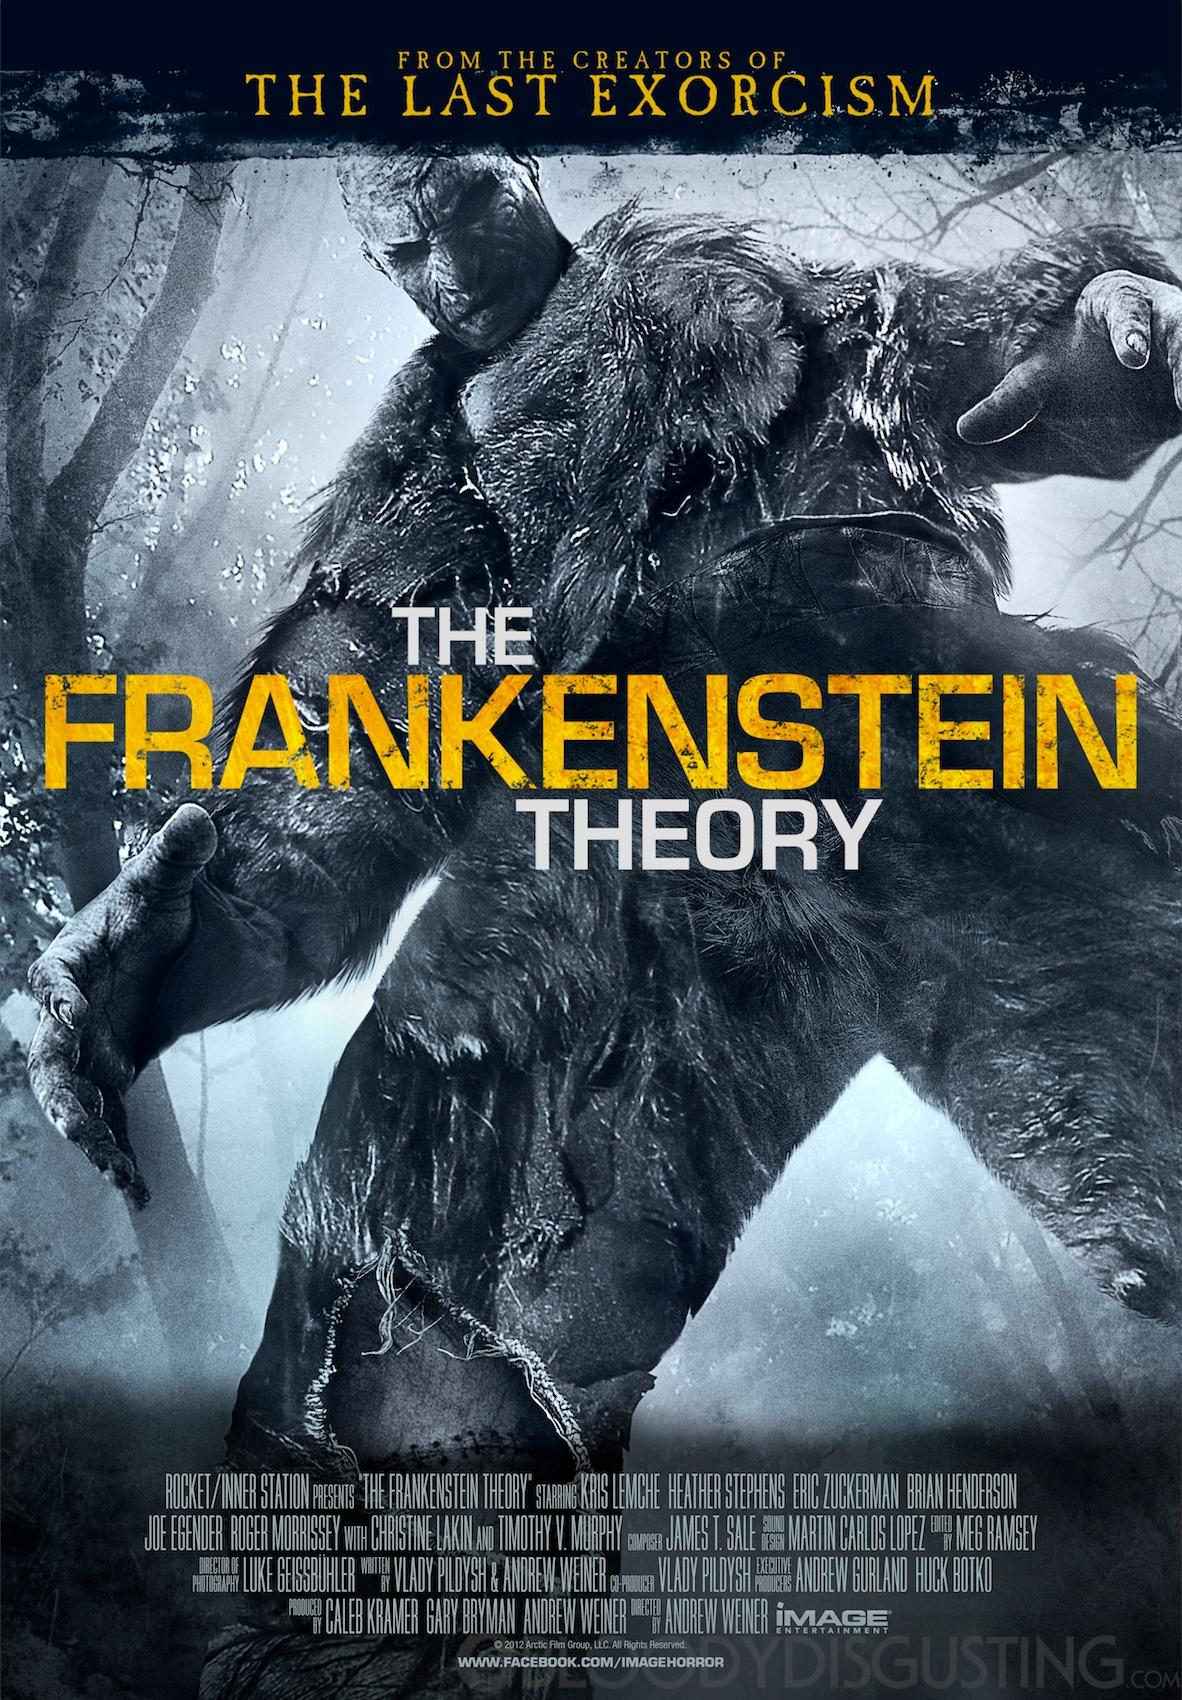 Frankenstein Theory, The (2013)